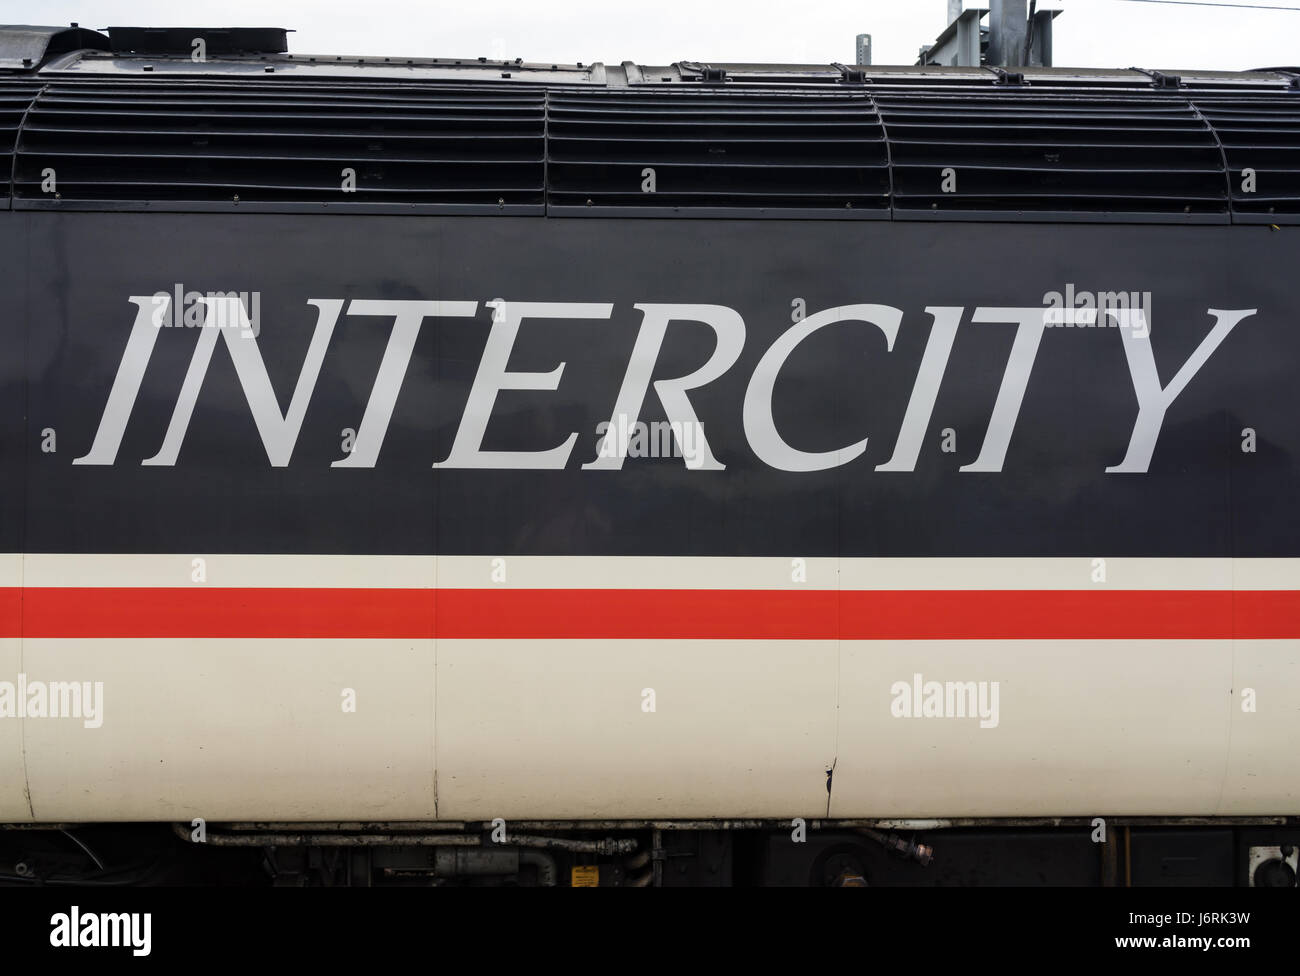 intercity swallow high resolution stock photography and images alamy https www alamy com stock photo intercity swallow livery on a class 43 hst 141890781 html